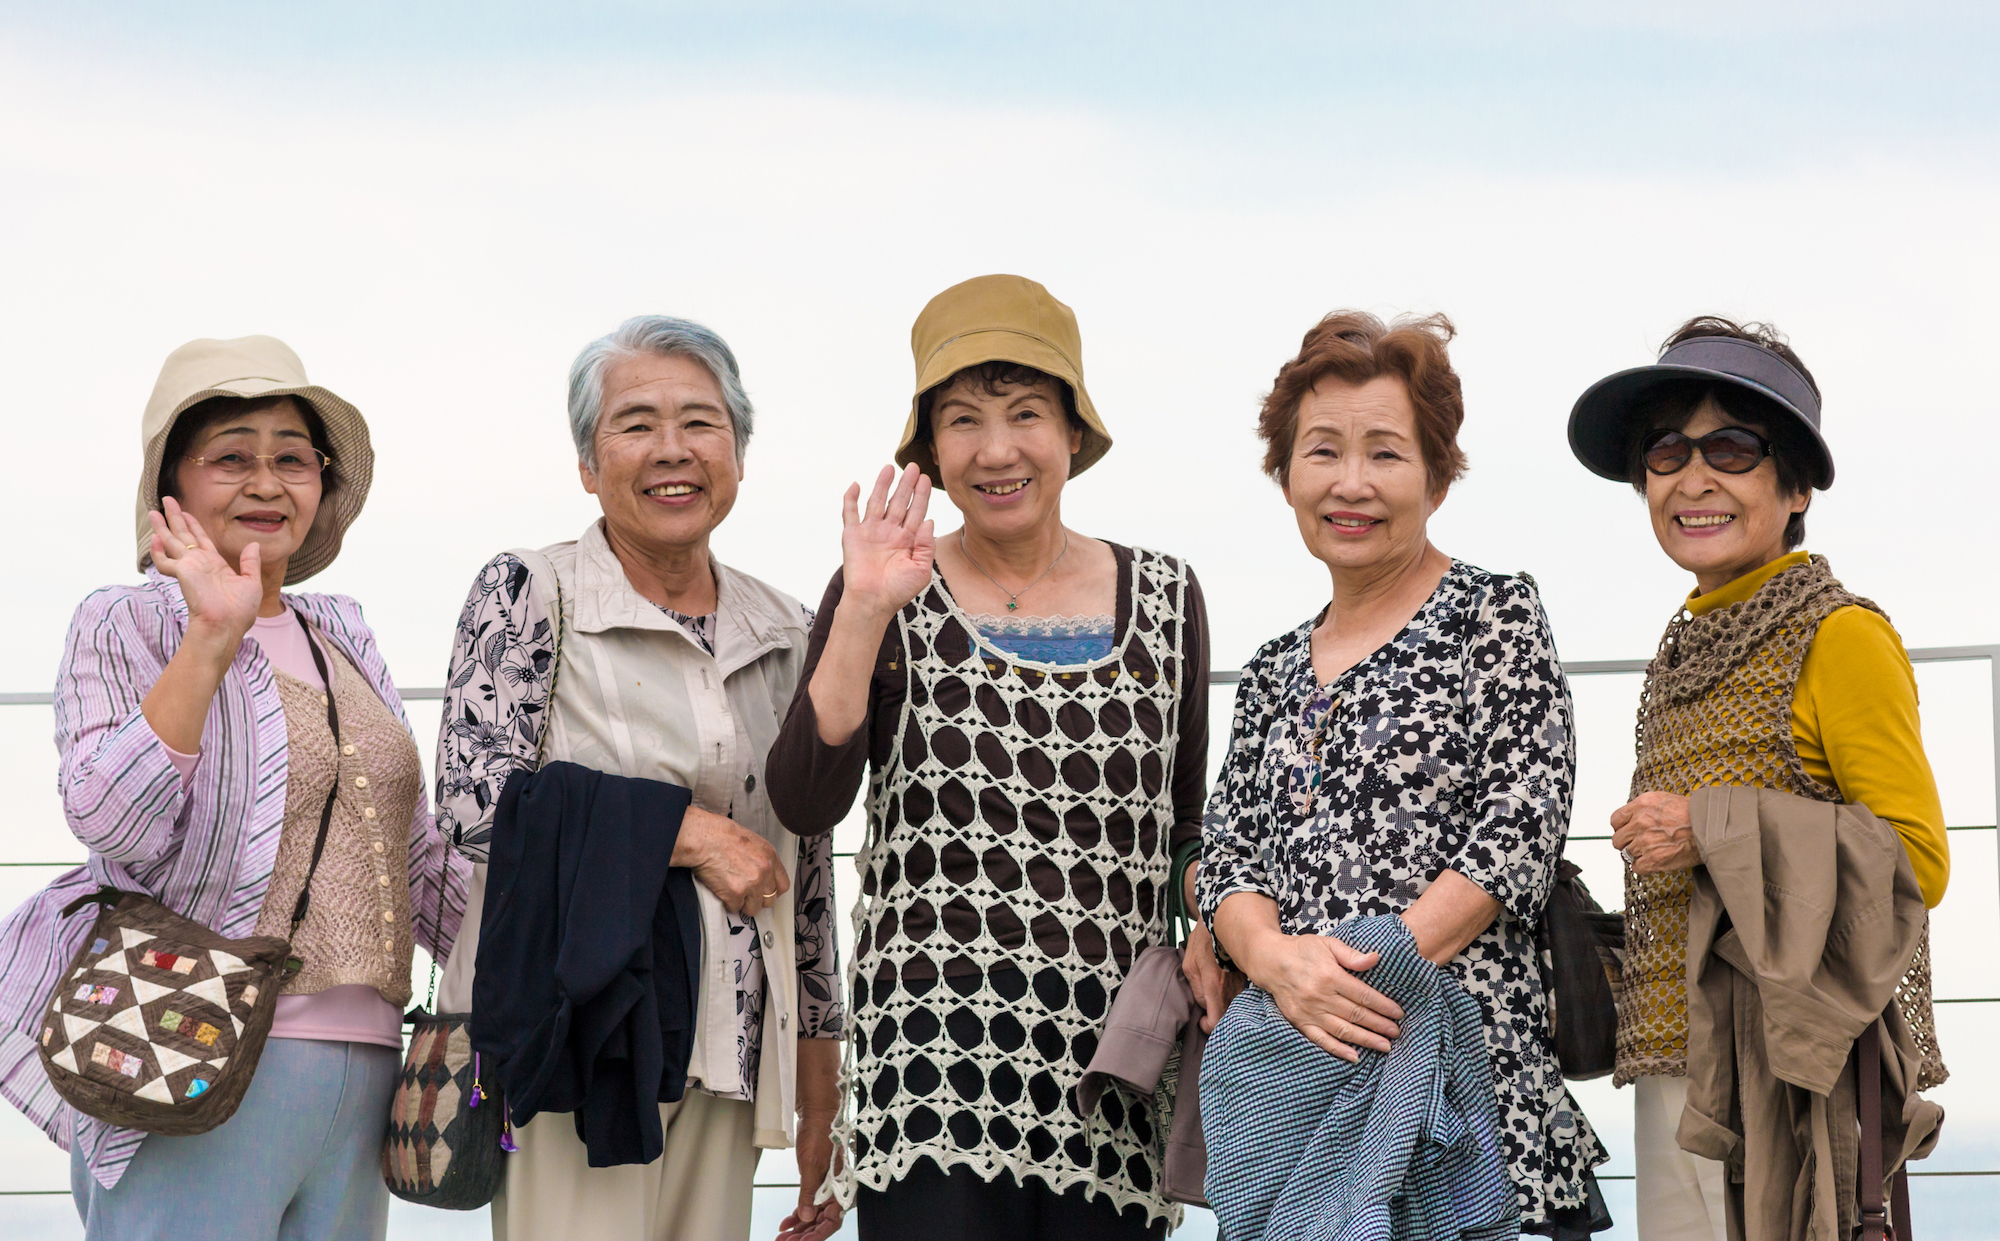 A research team, led by Kenji Shibuya, a University of Tokyo professor of health policy, has found that average life expectancy in Japan has increased to 83.2 years from 79.0 years during the quarter-century period. | ISTOCK